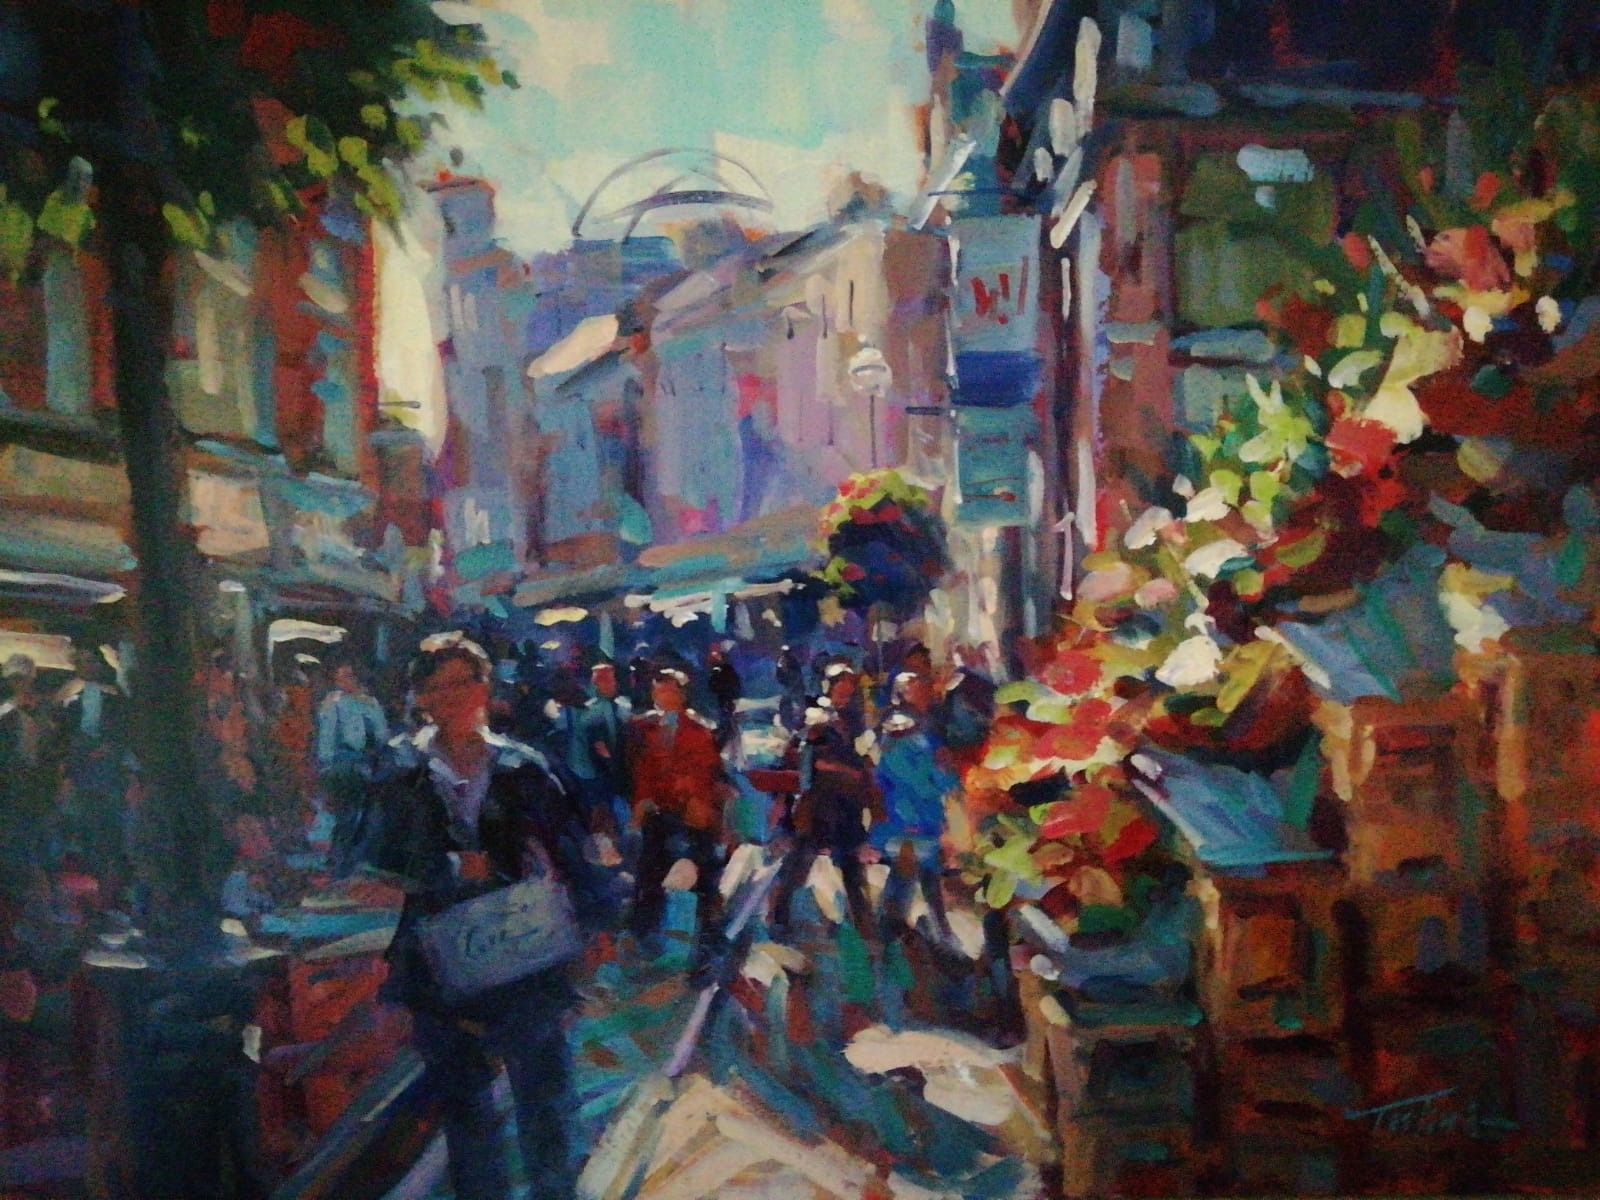 'Sunny Afternoon Grafton St.', oil on board, 51cm x 61cm, £1,800